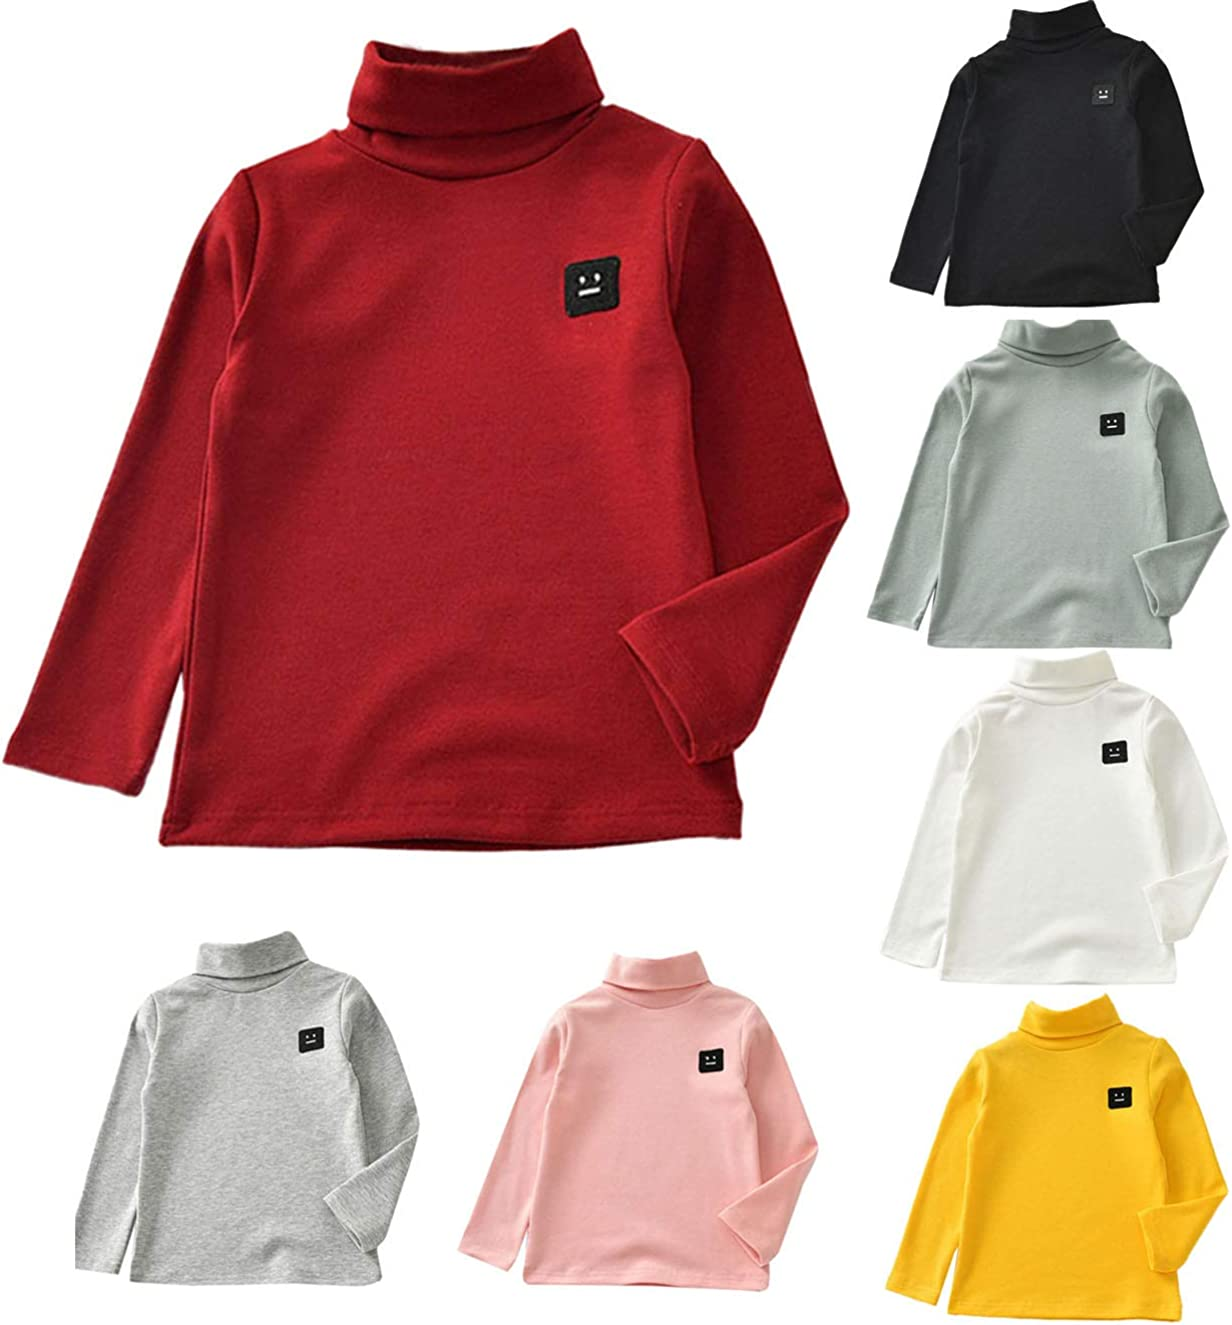 Zerototens Kids Plain T-Shirt,1-5 Years Old Toddler Infant Baby Boys Girls Long Sleeve Turtleneck Sweatshirt Tops Children Basic Tee Casual Warm Outfit Clothes Red